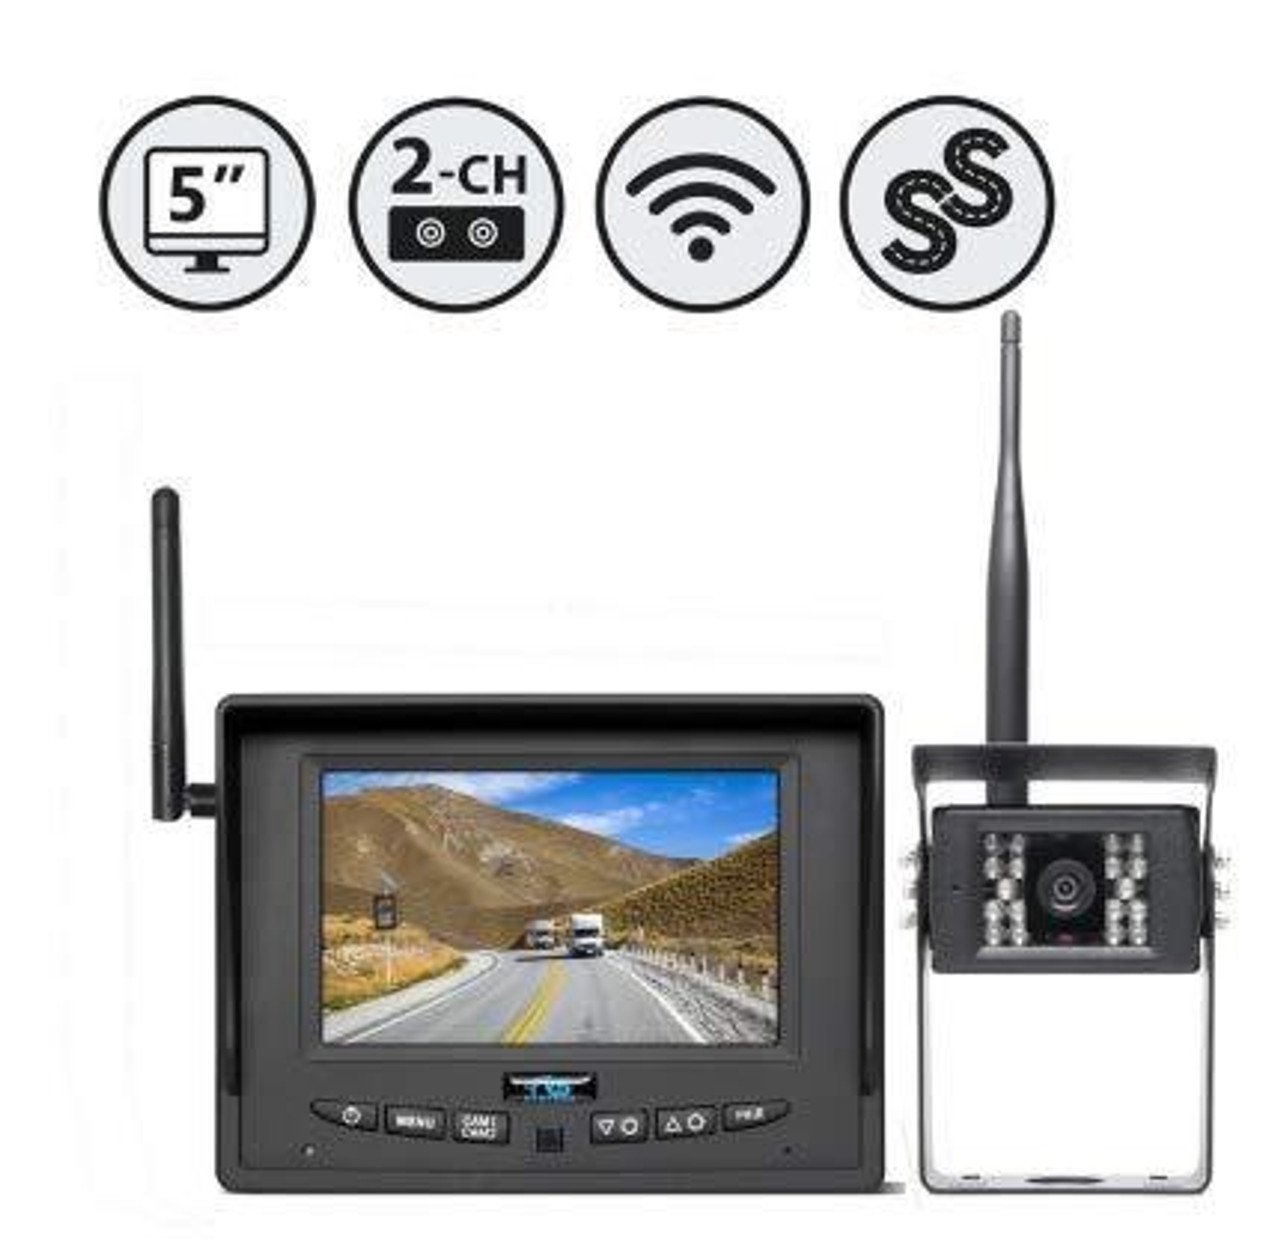 "5"" Wireless Display (2 Ch.), 1 x Wireless Backup Camera, Adhesive Mount"